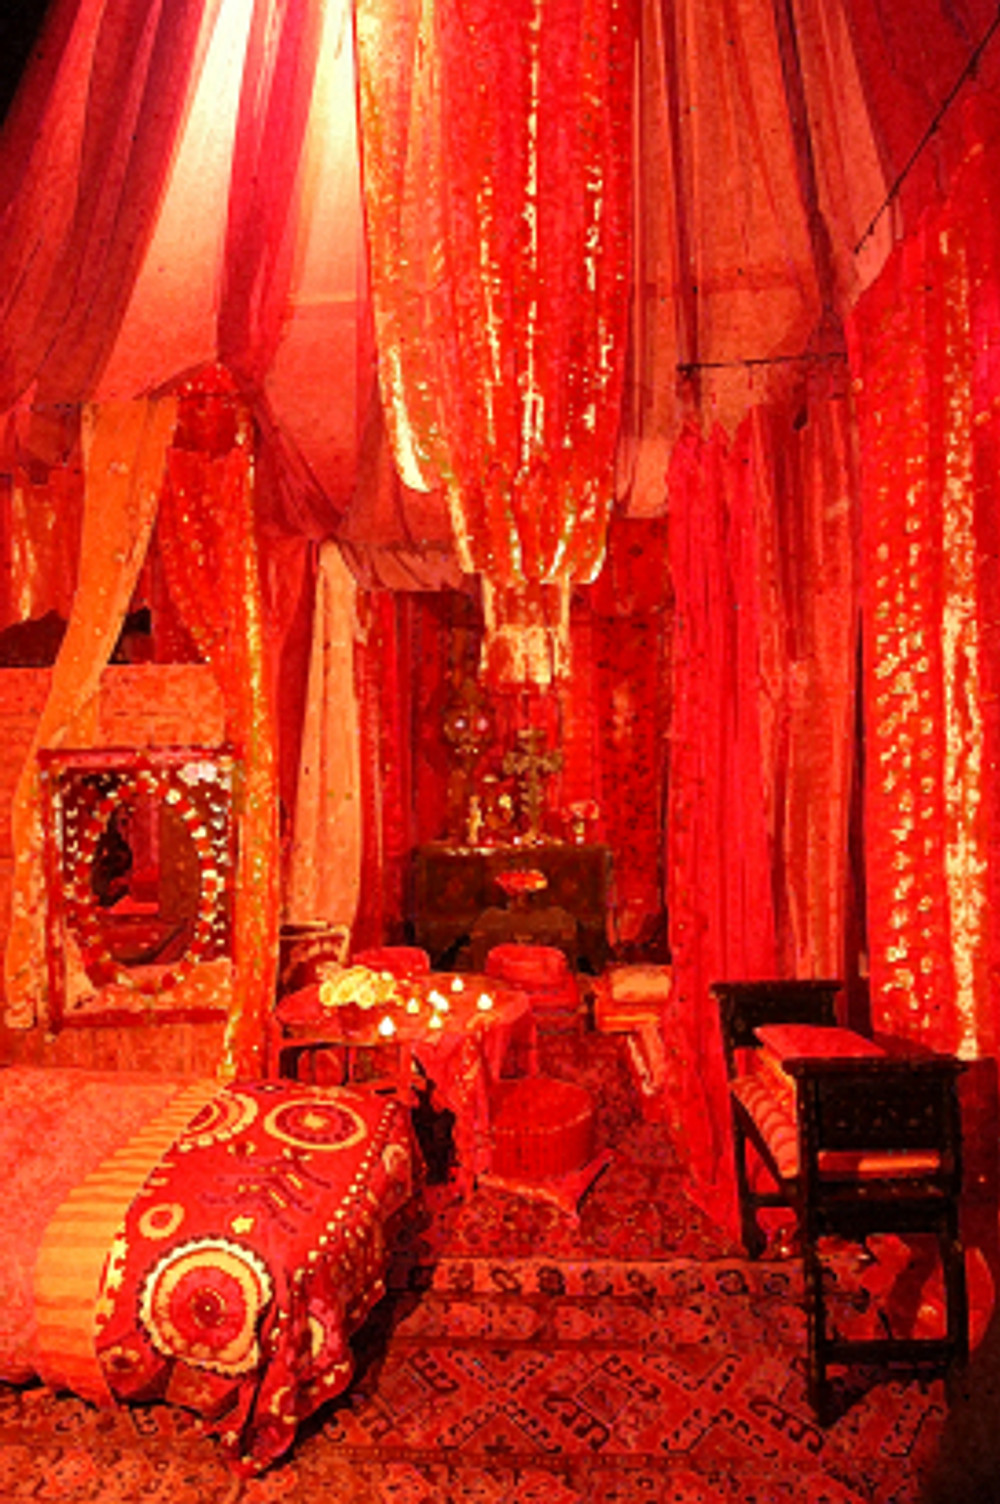 Red Tent, ABC Carpet & Home Store, New York, NY.